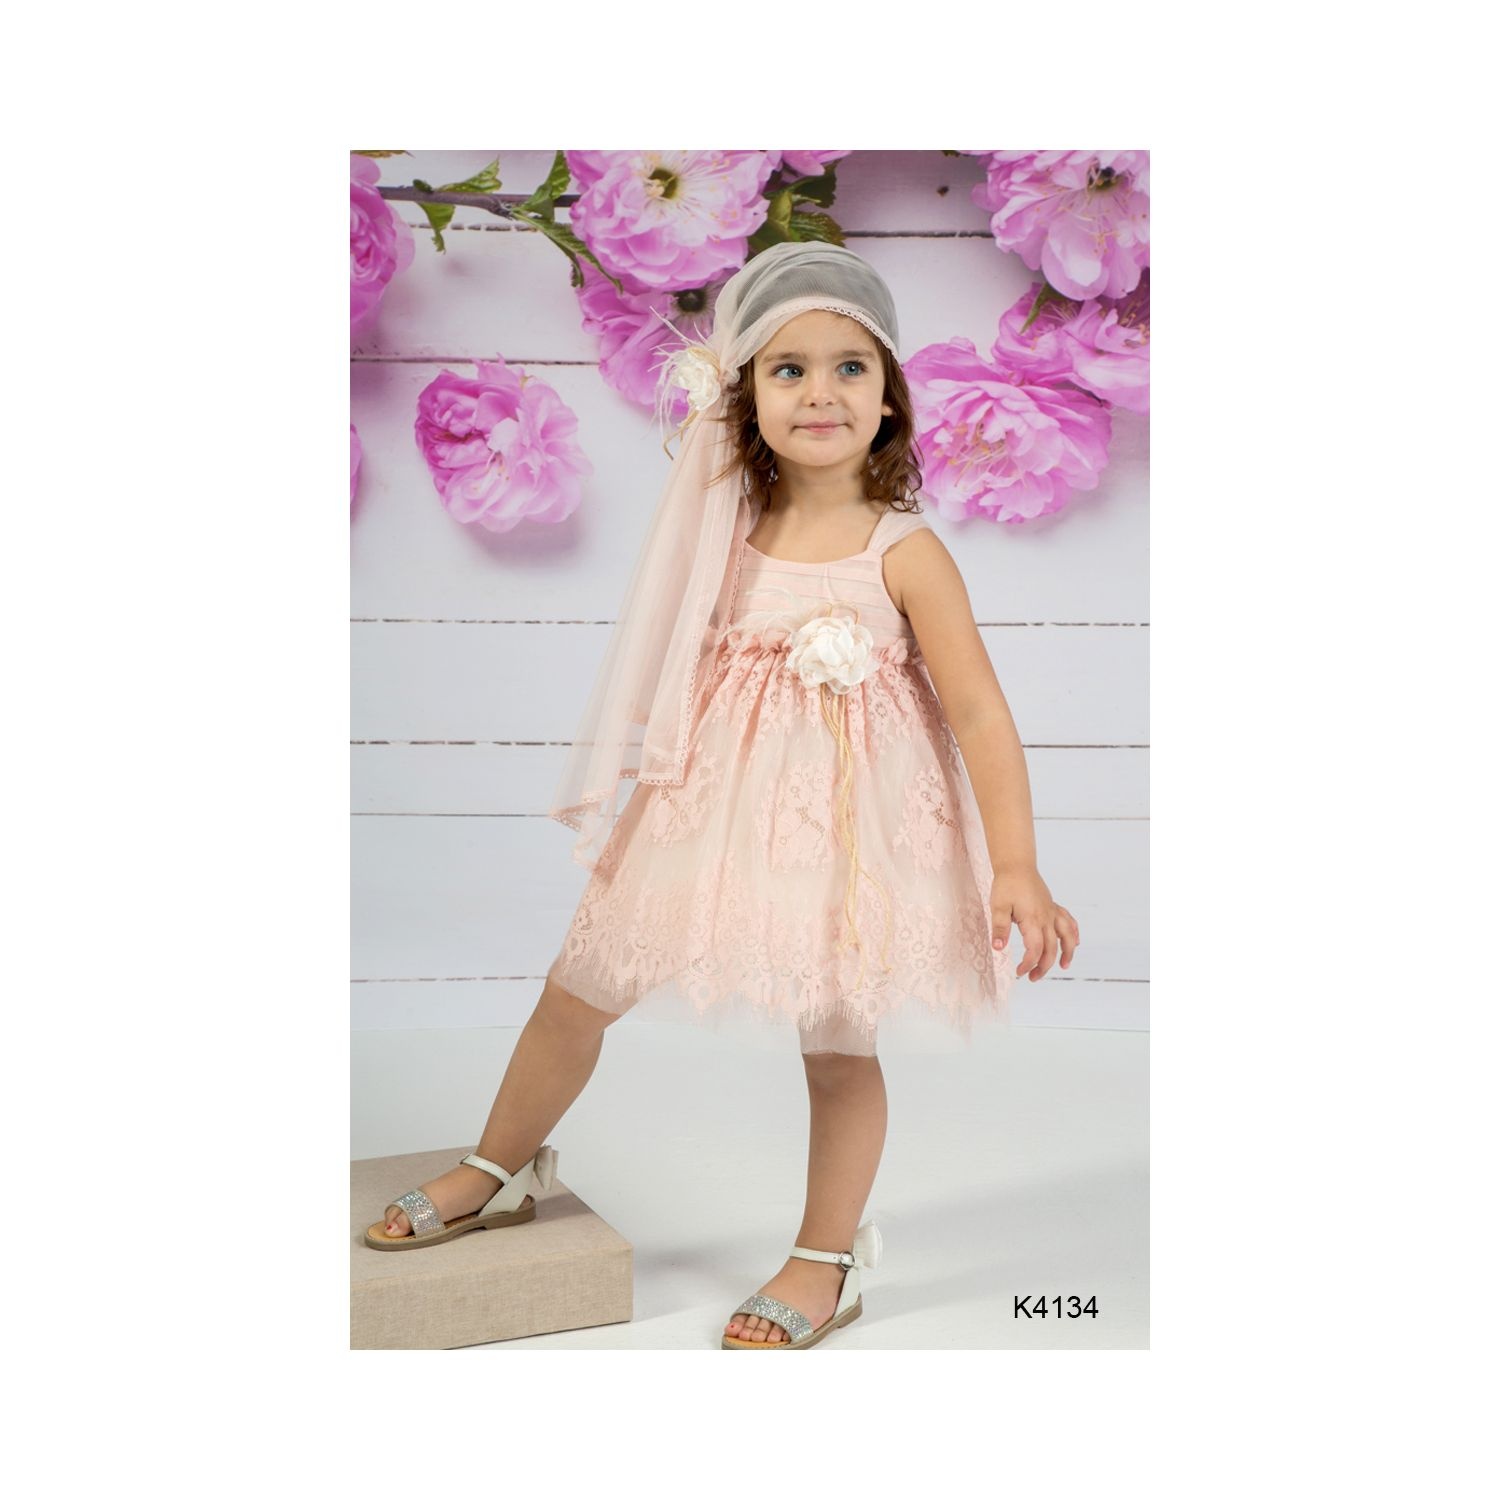 Salmon color baptism gown K4134